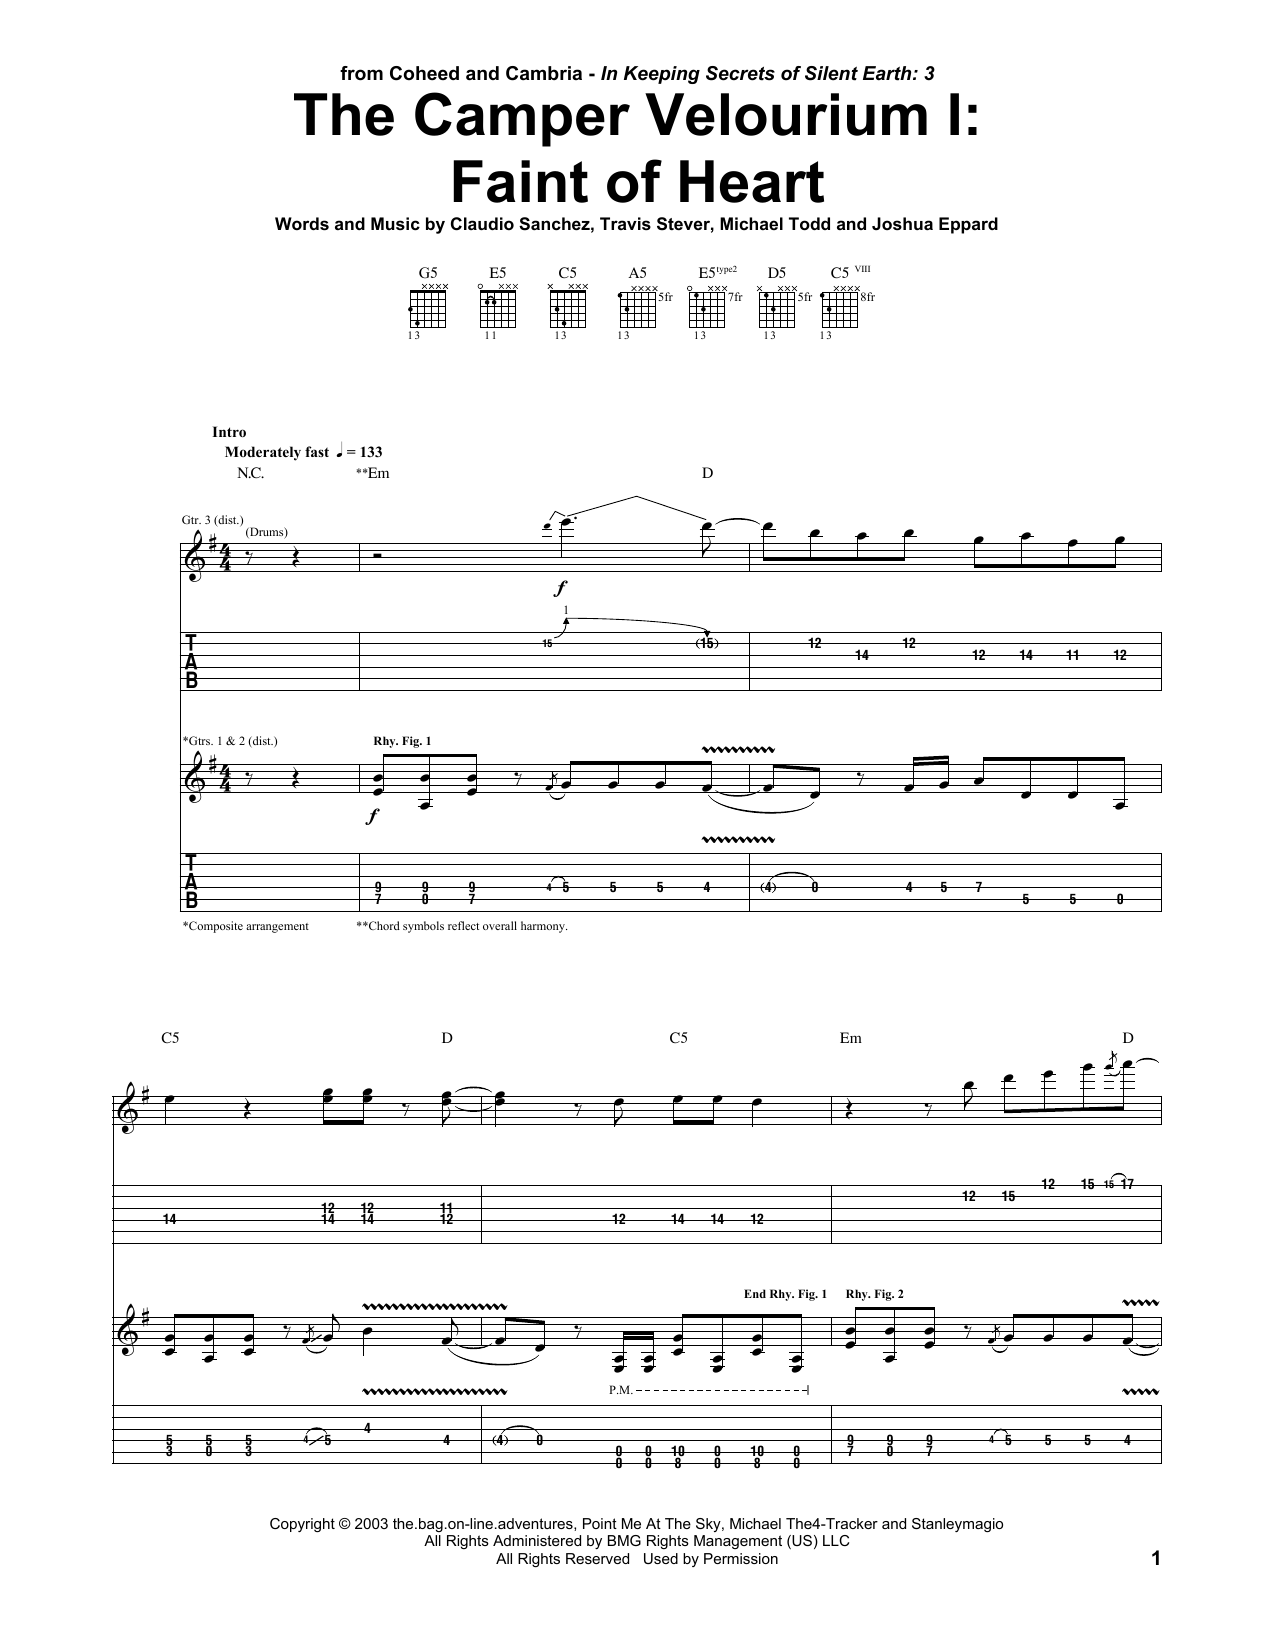 The Camper Velourium I: Faint Of Heart Sheet Music